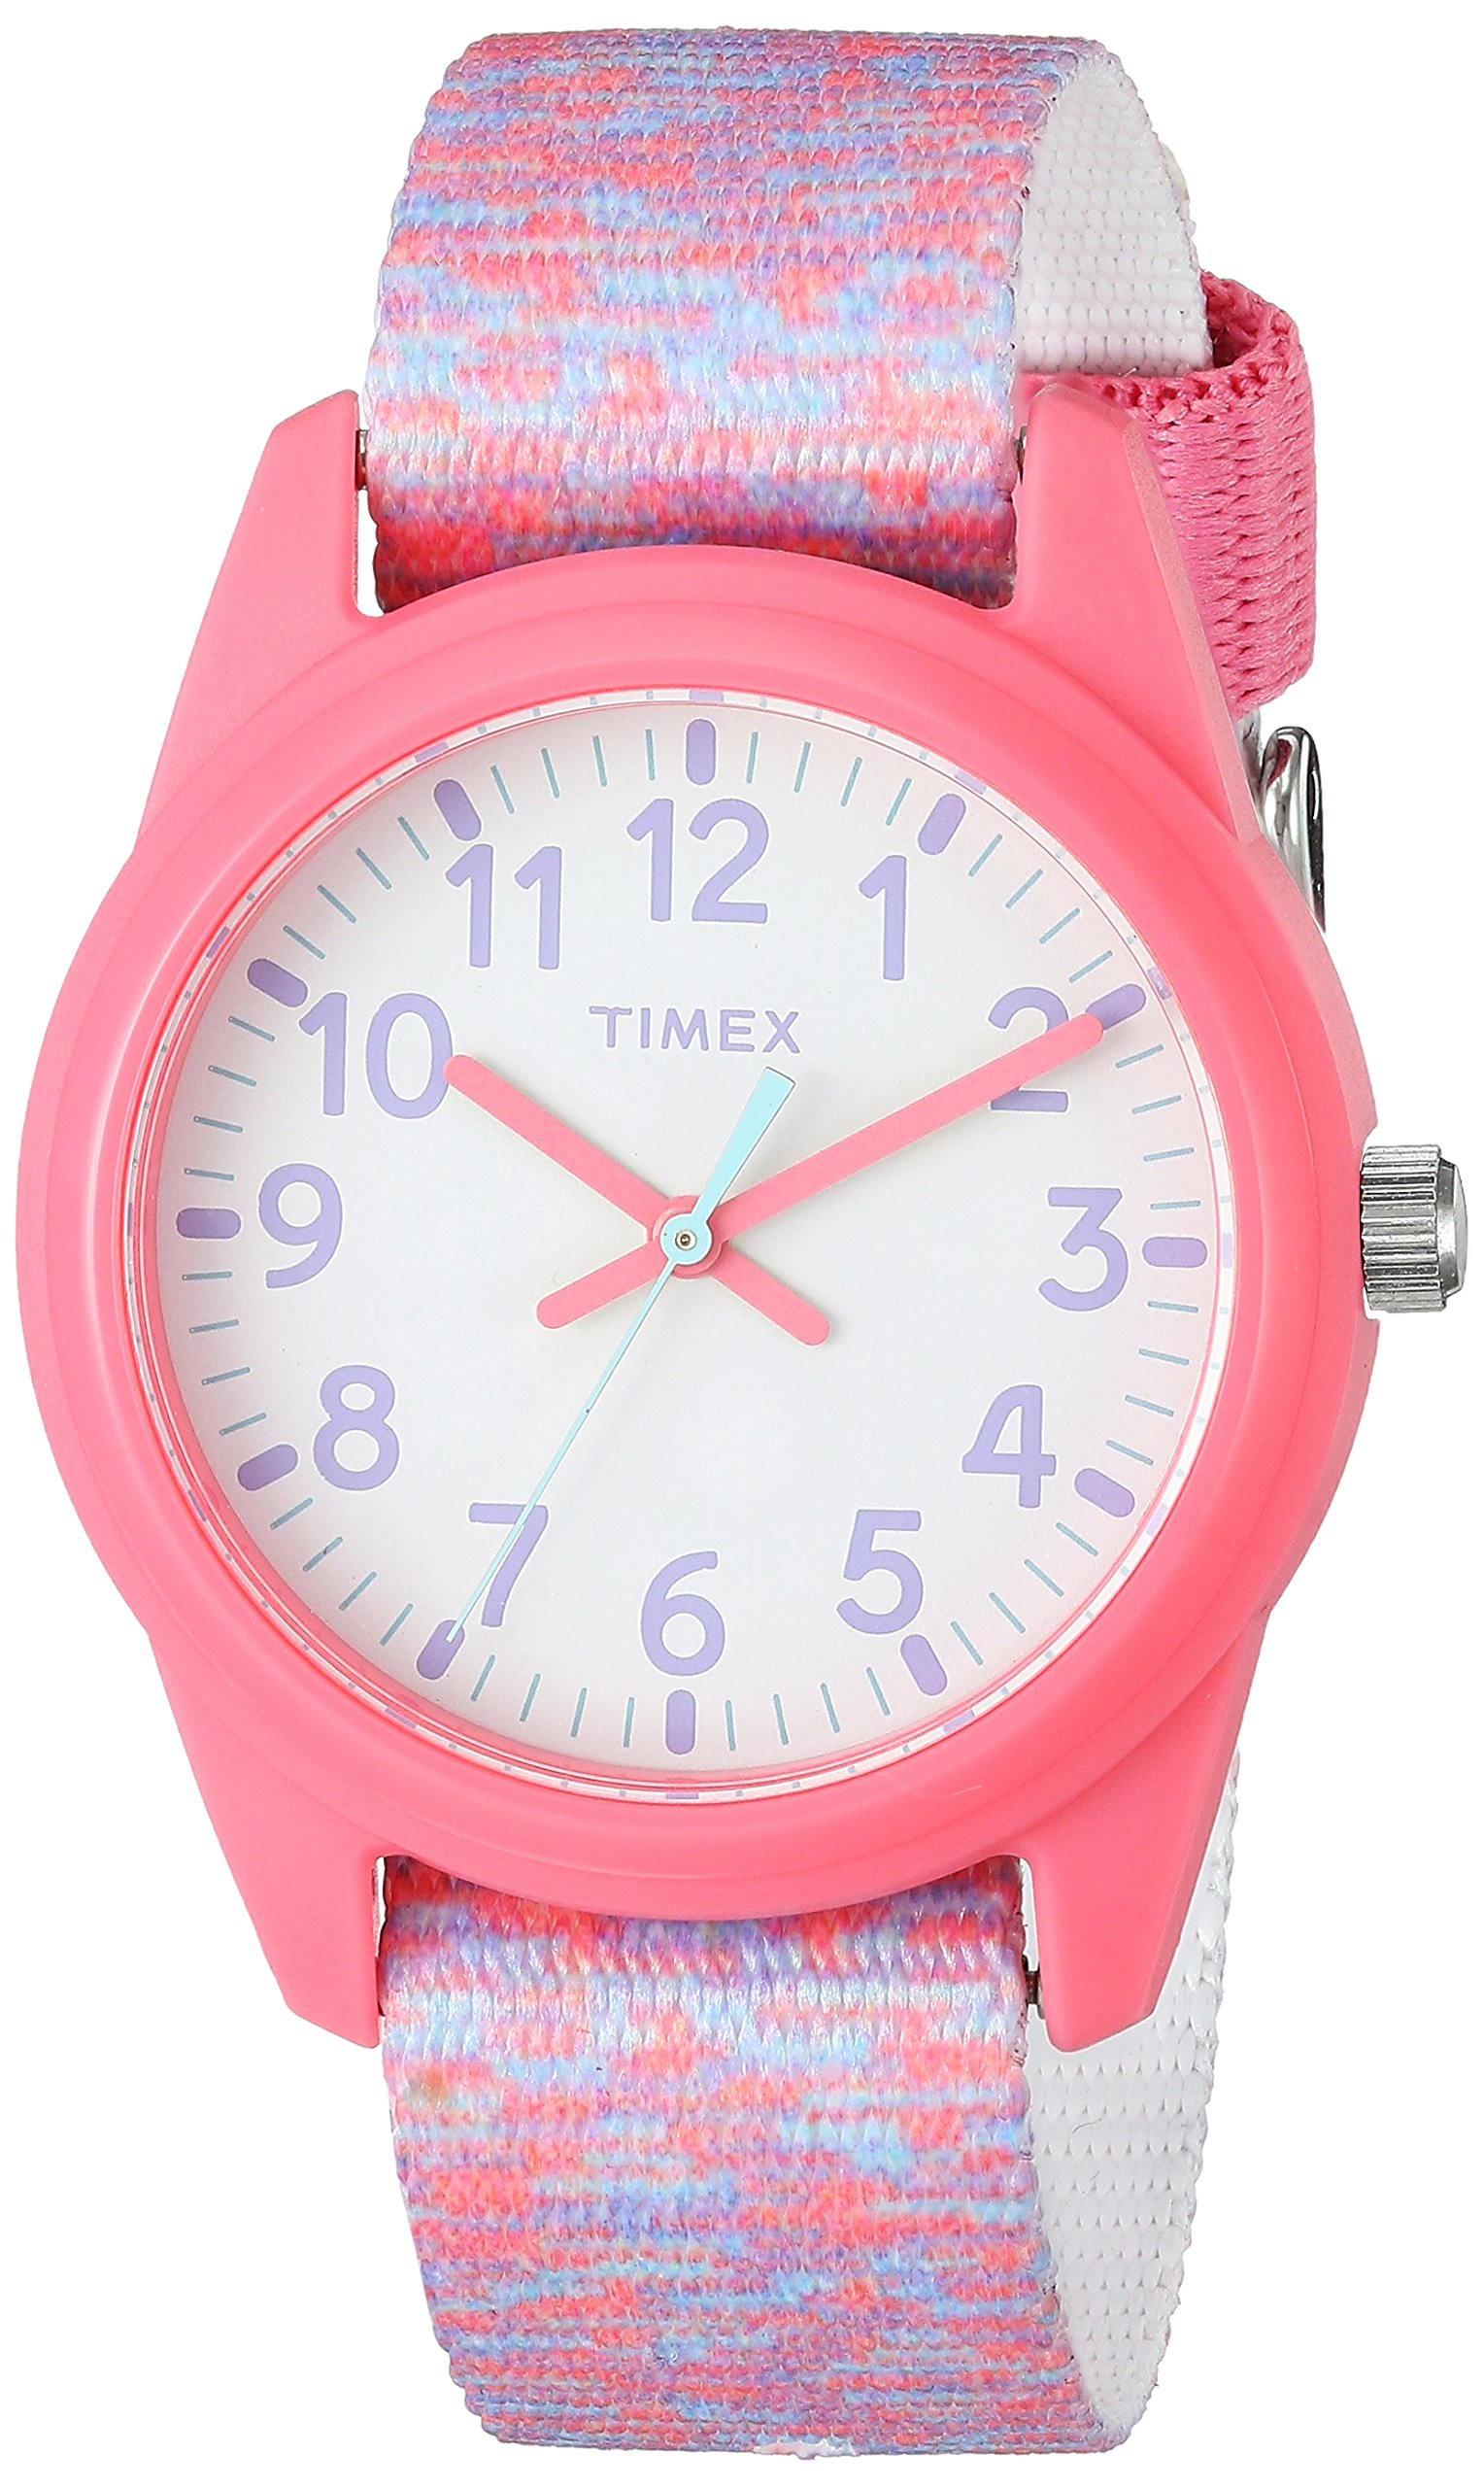 Timex Girls TW7C12300 Time Machines Pink/White Sport Elastic Fabric Strap Watch by Timex